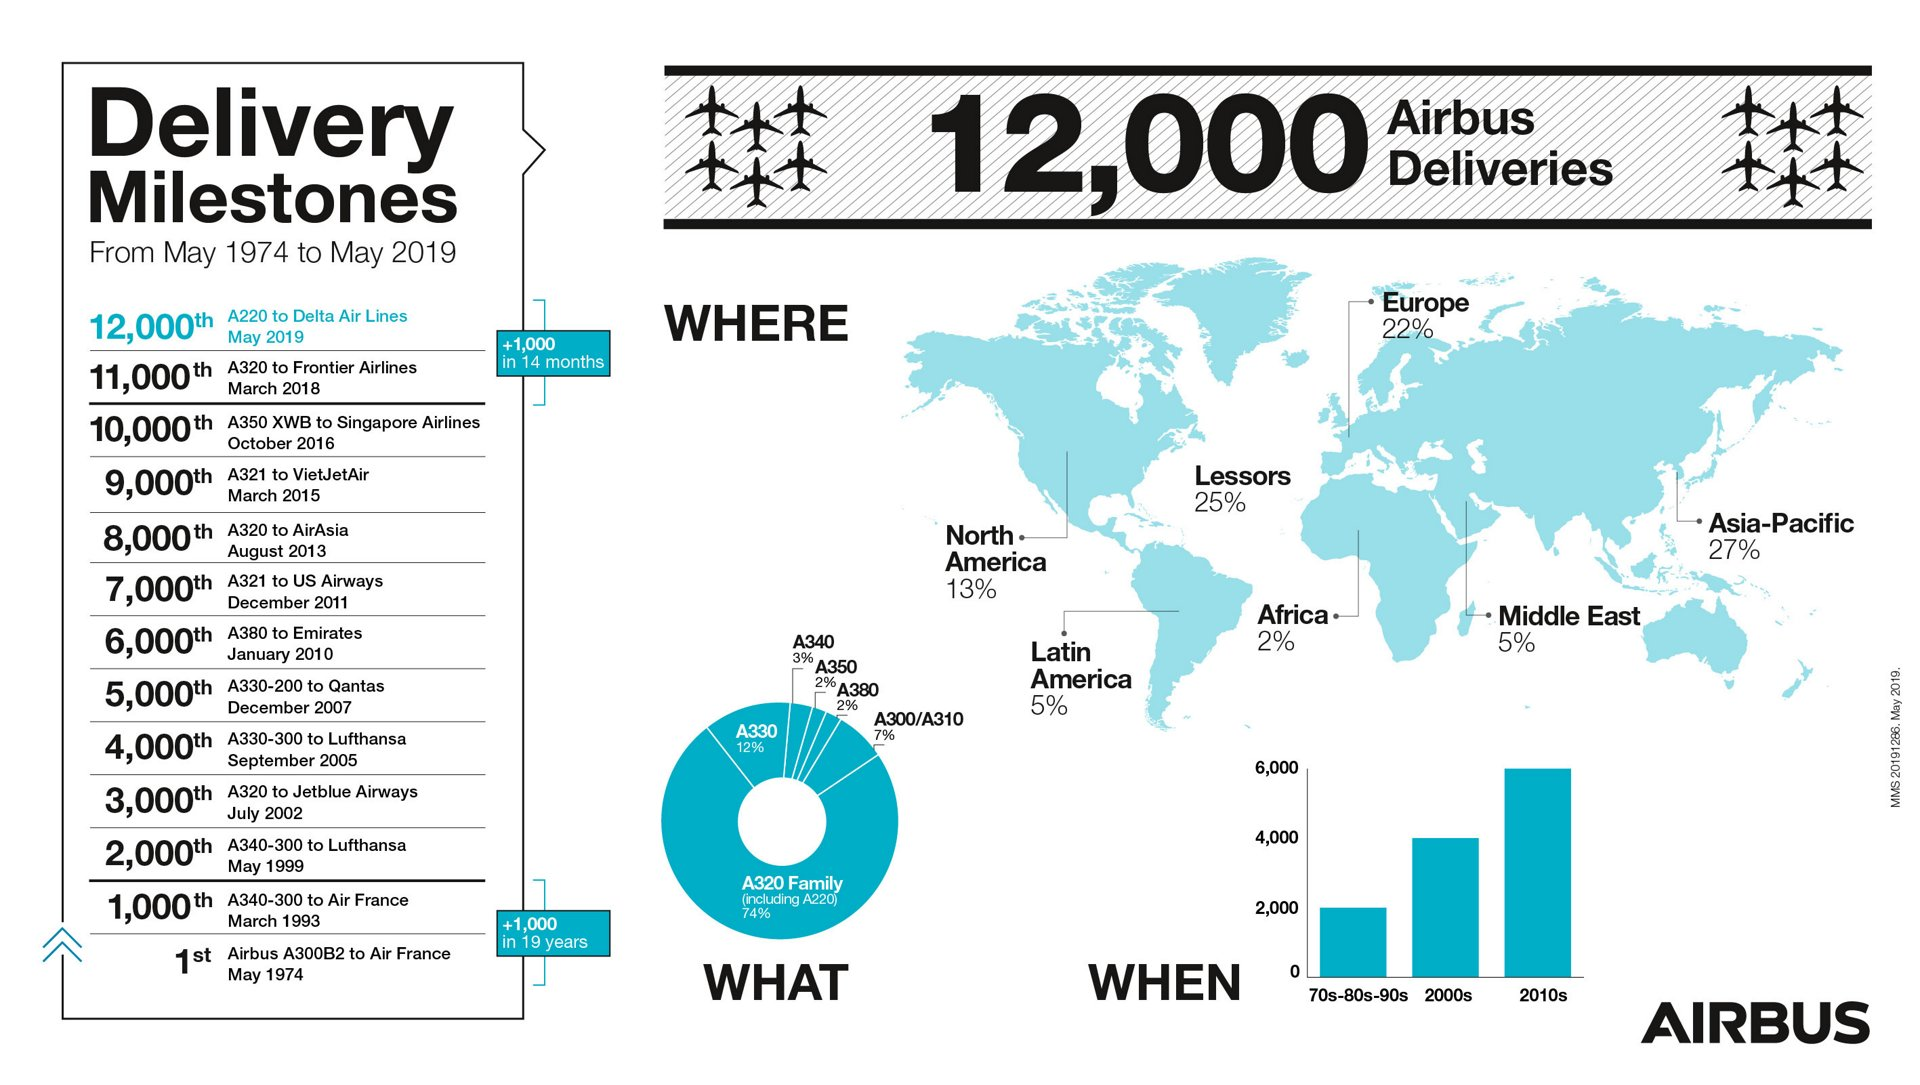 Infographic - Airbus delivery milestones for its family of commercial jetliners, and the geographic distribution of these aircraft